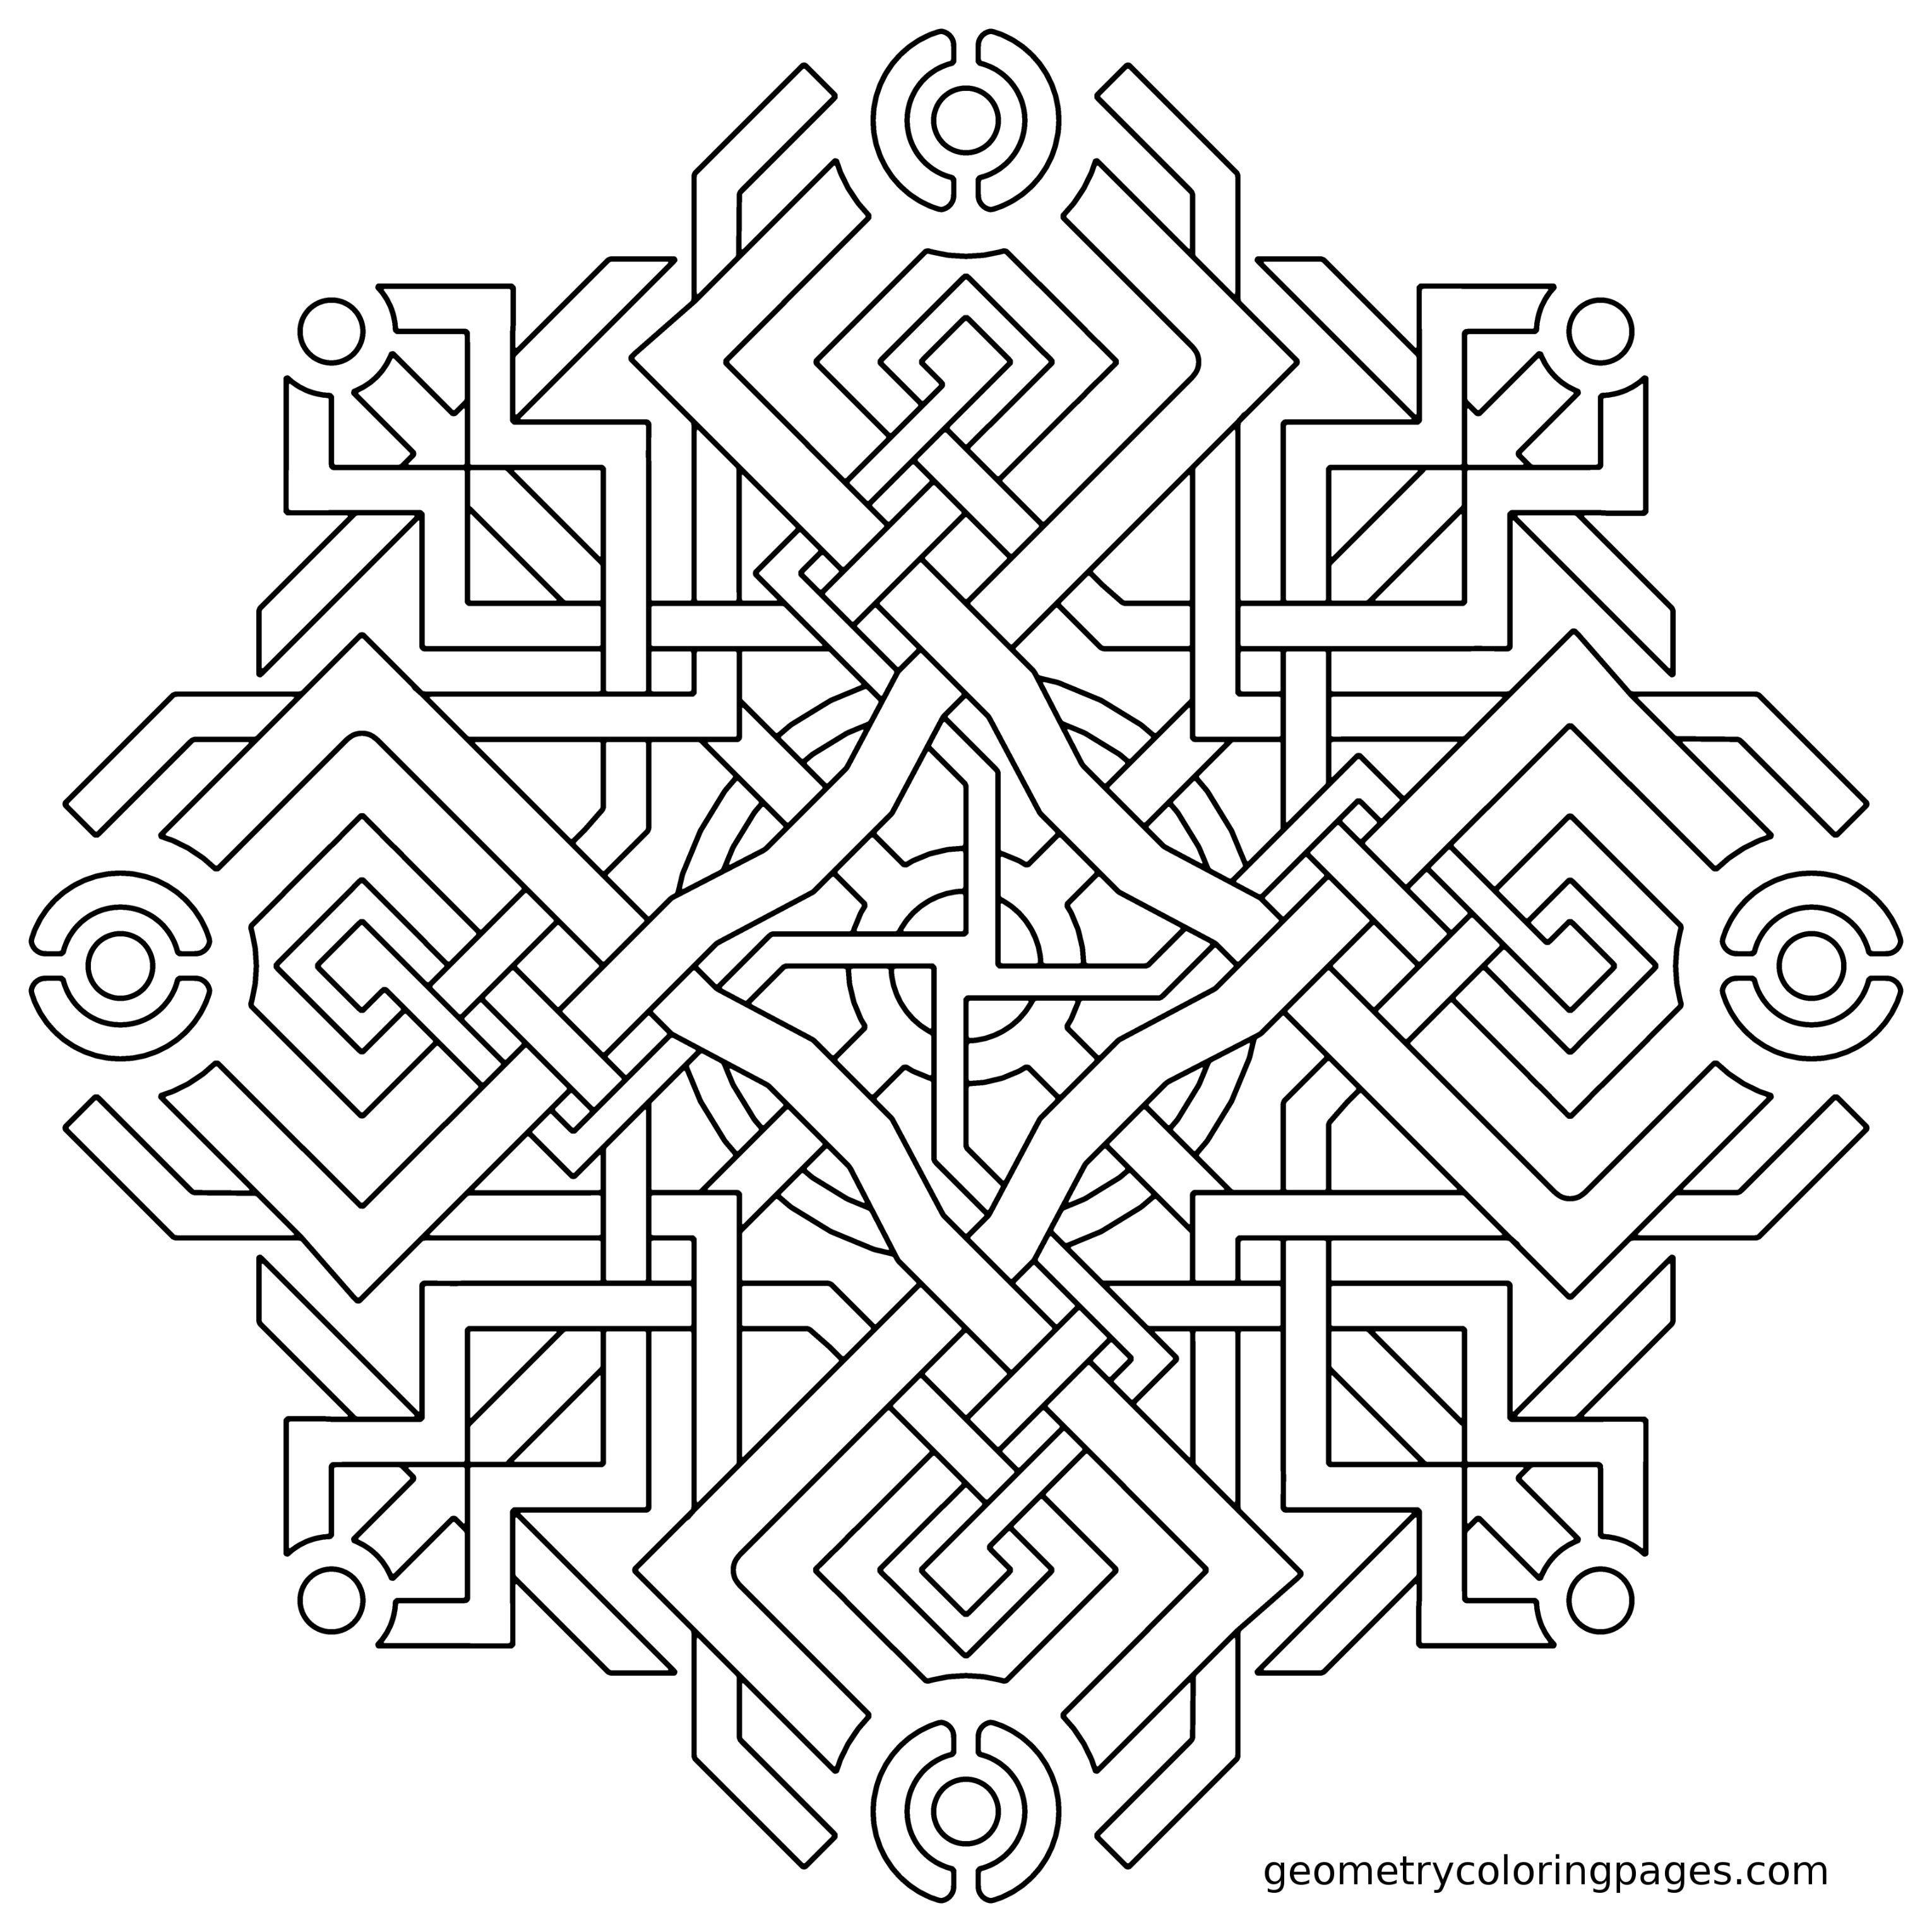 3060x3060 Coloring Page Of Geometric Shapes Free Draw To Color